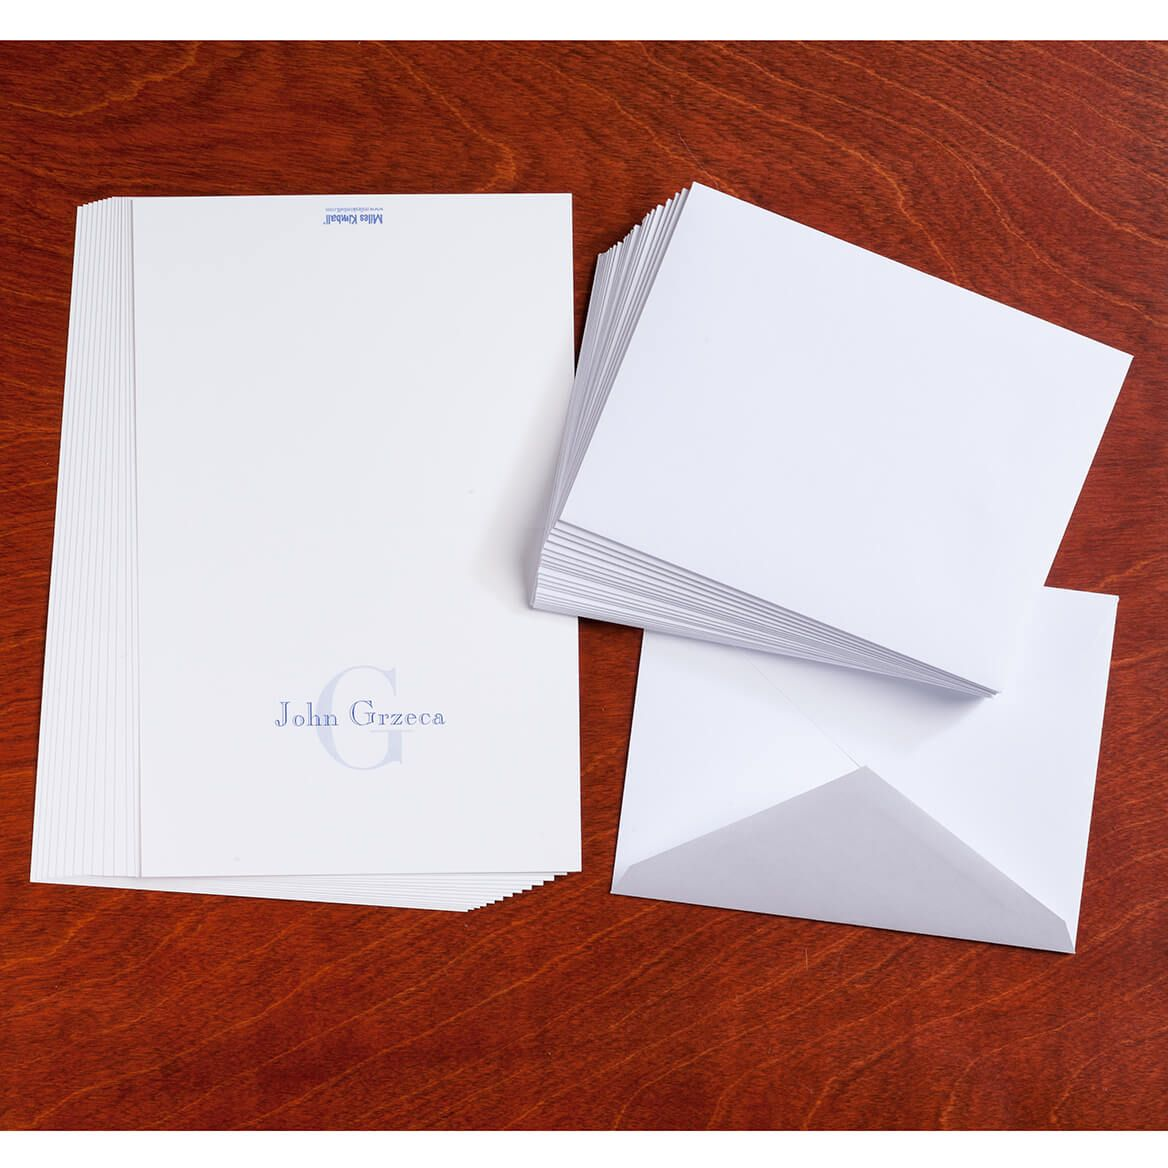 Personalized Block Note Cards Set of 25-346747